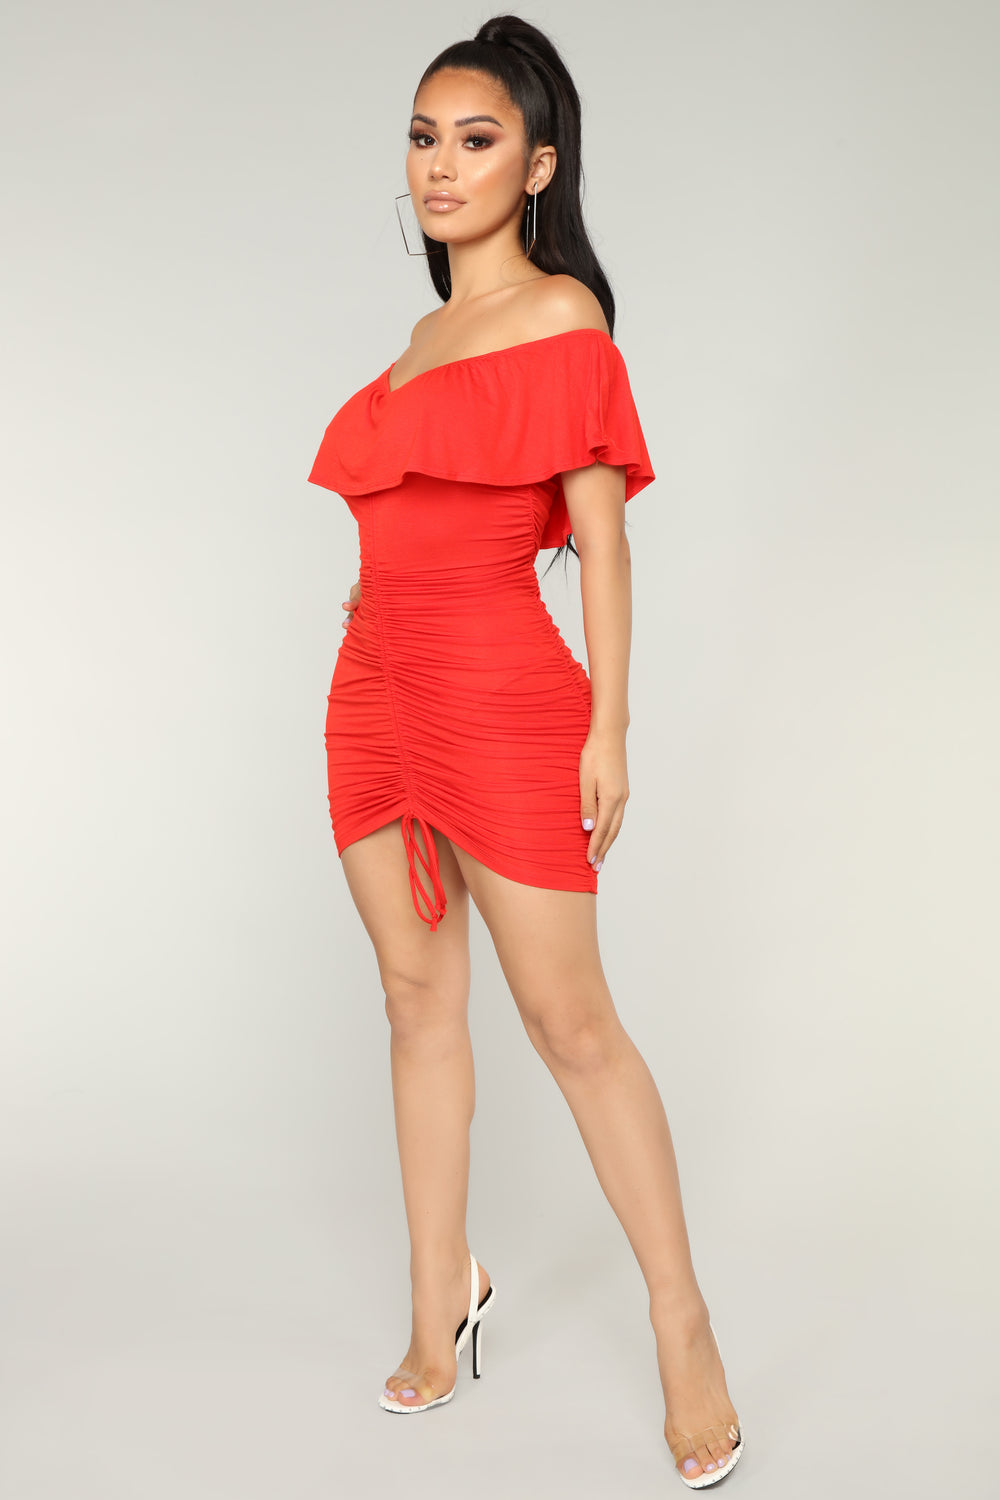 Saigon Ruched Dress - Red